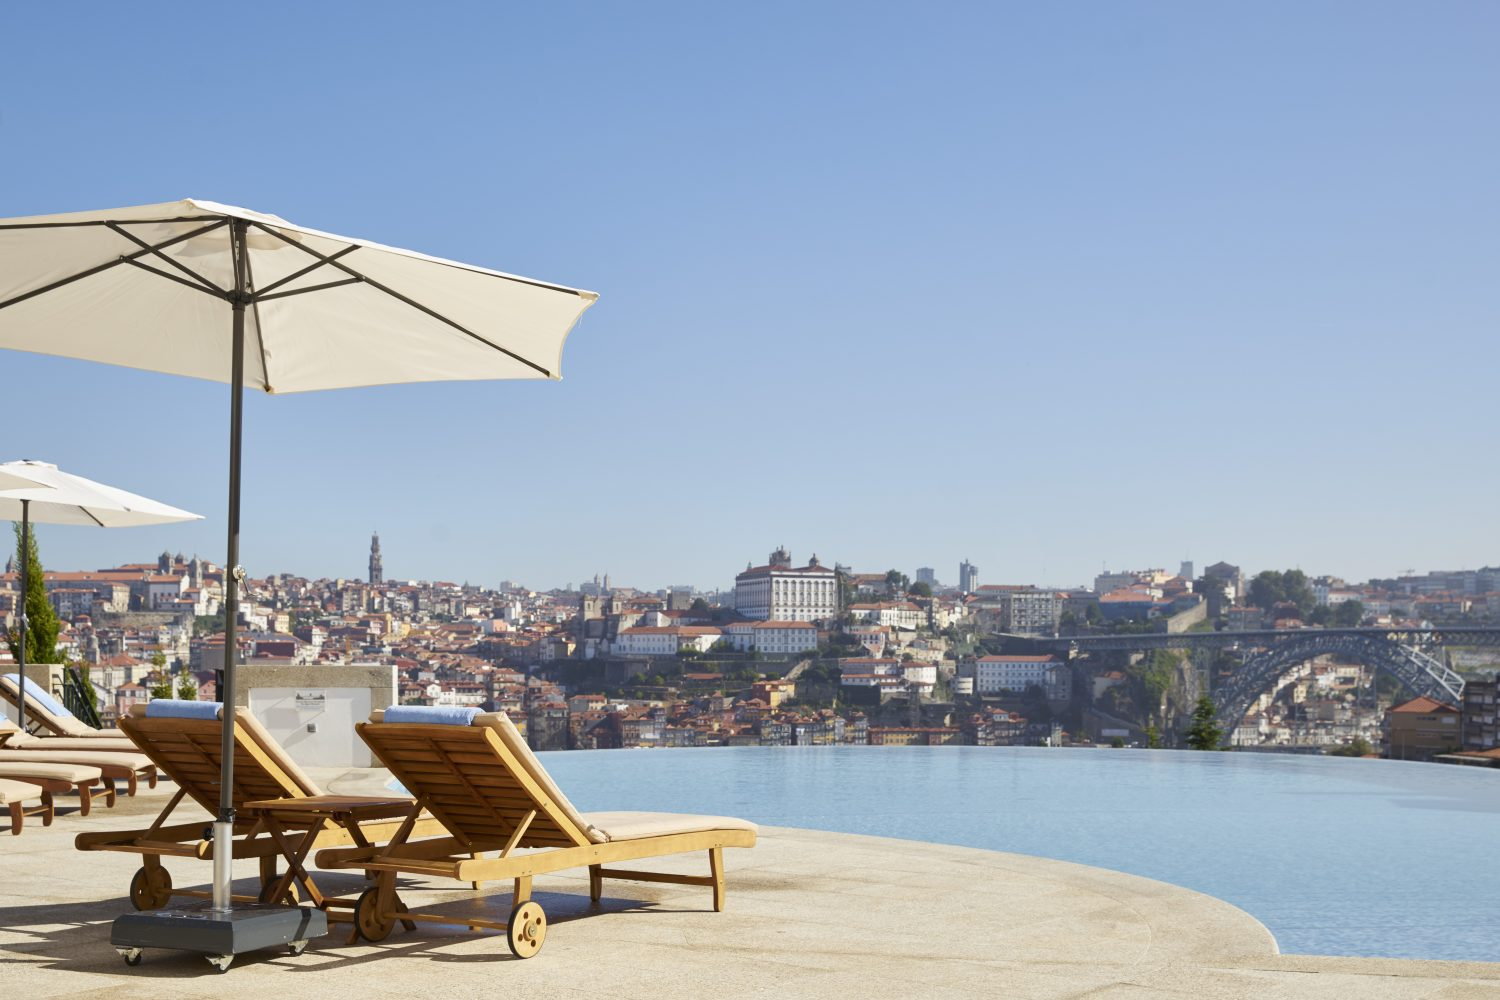 View to Ponte Luis I from Infinity Pool Outdoor at Yeatman Hotel Relais & Chateaux